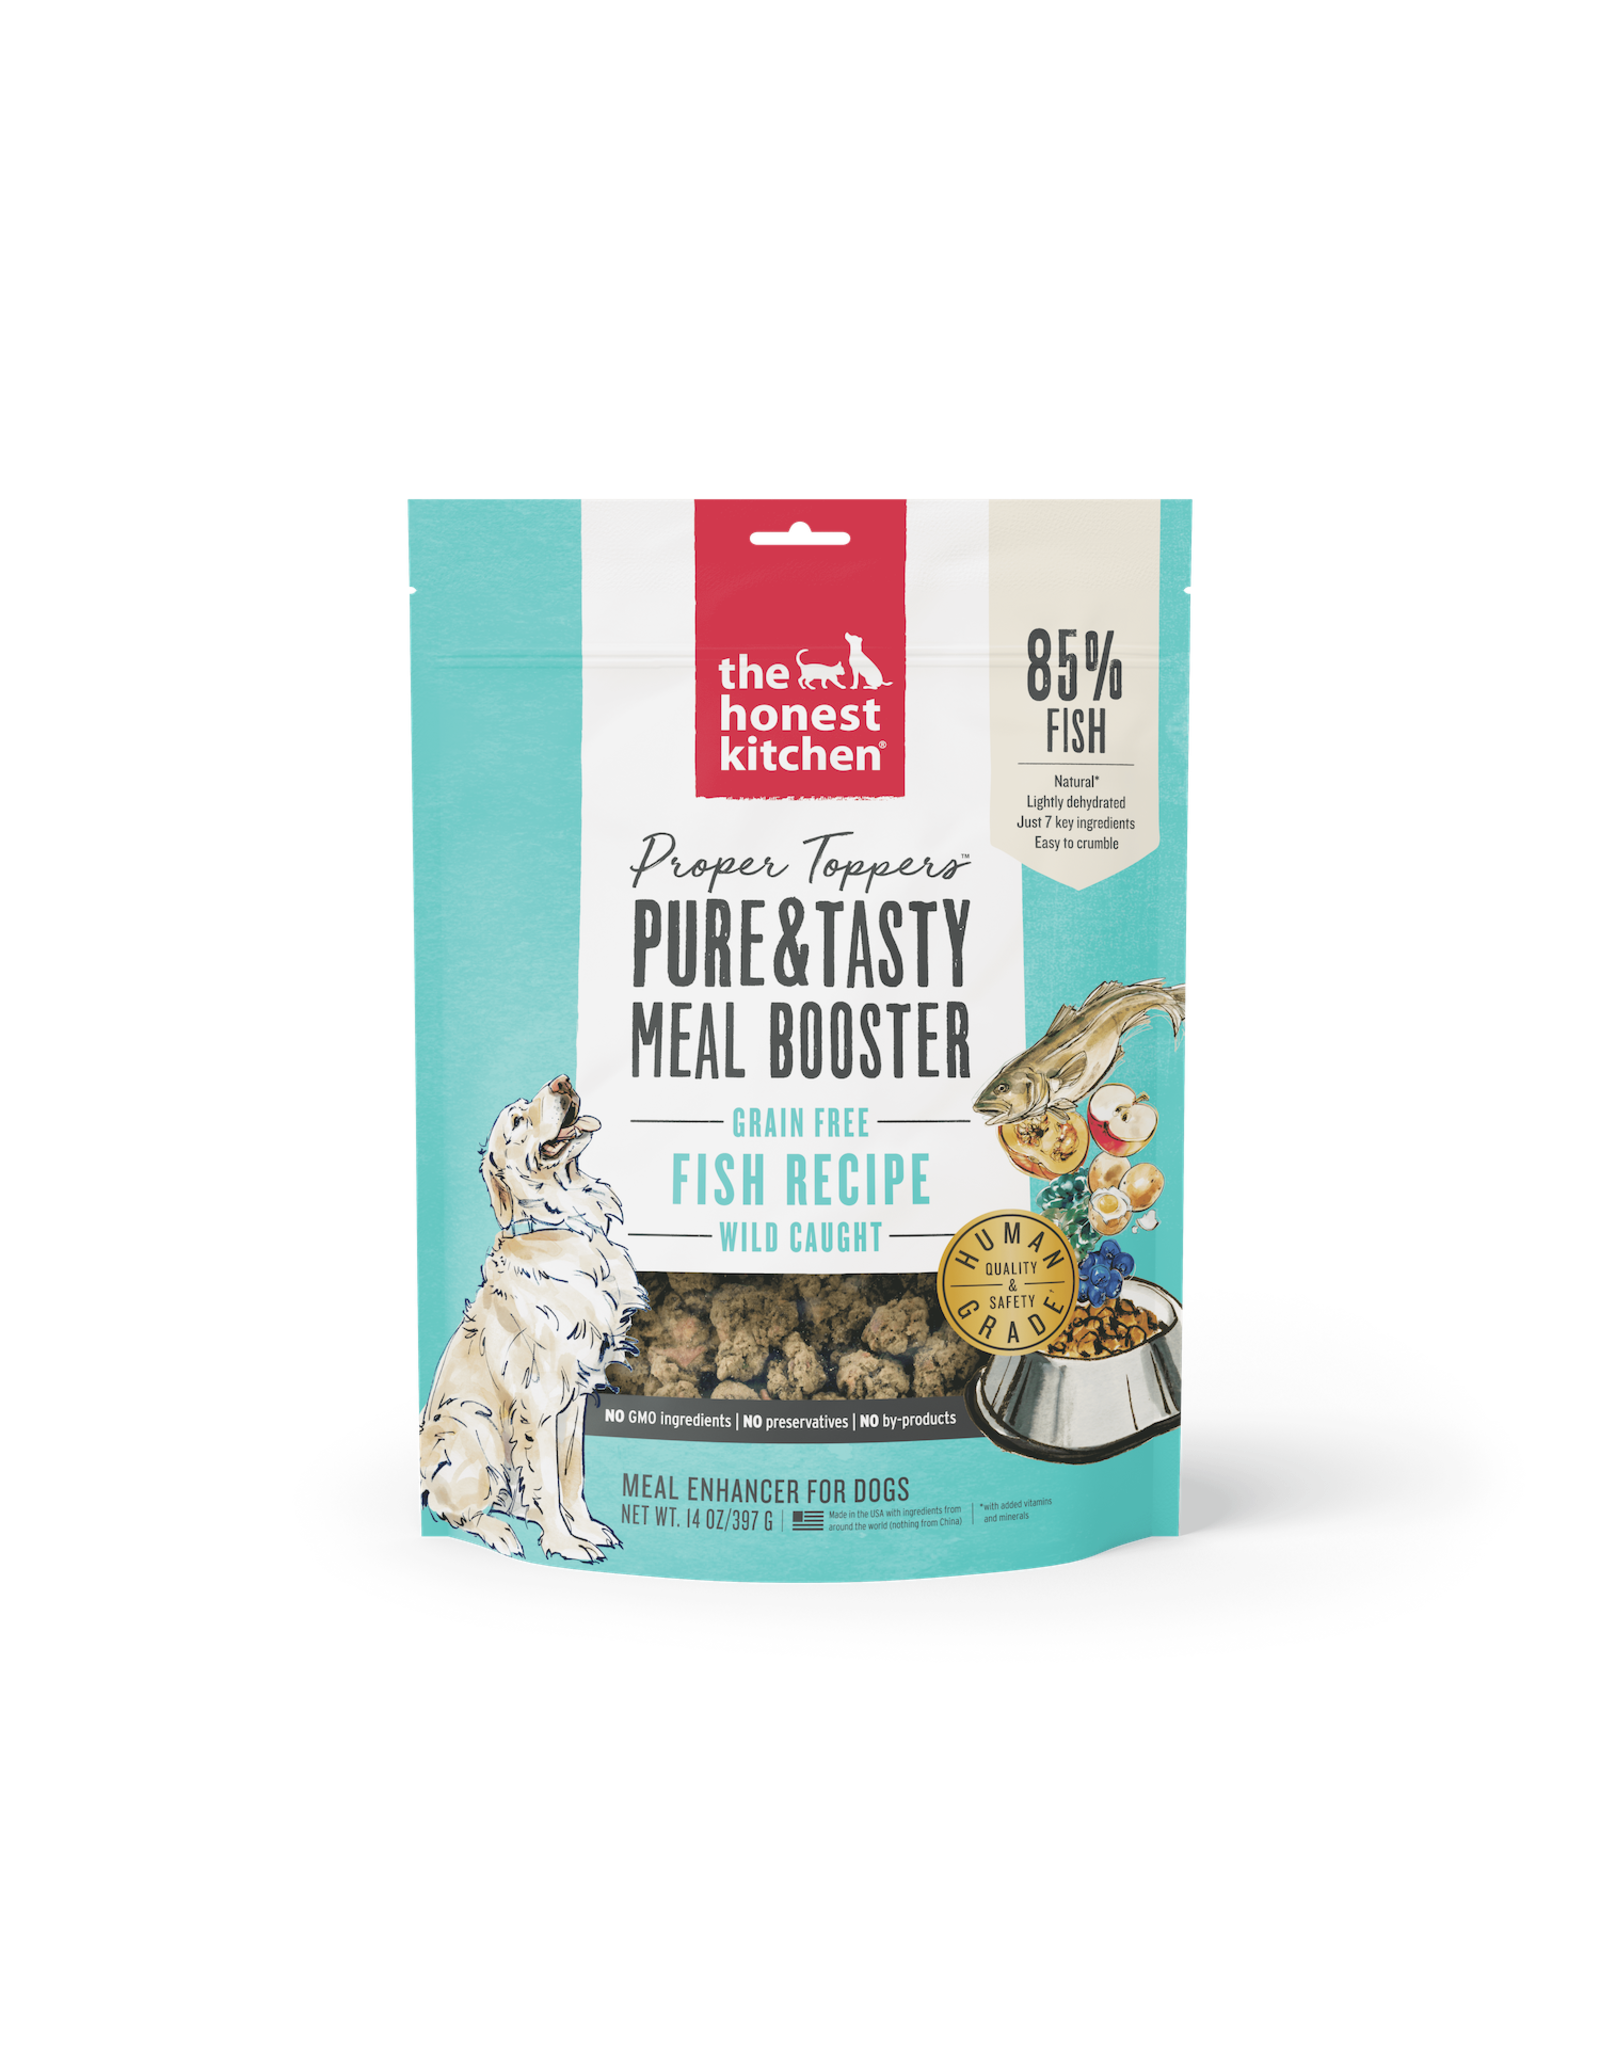 The Honest Kitchen THE HONEST KITCHEN PROPER TOPPERS MEAL ENHANCER FOR DOGS FISH RECIPE 14OZ